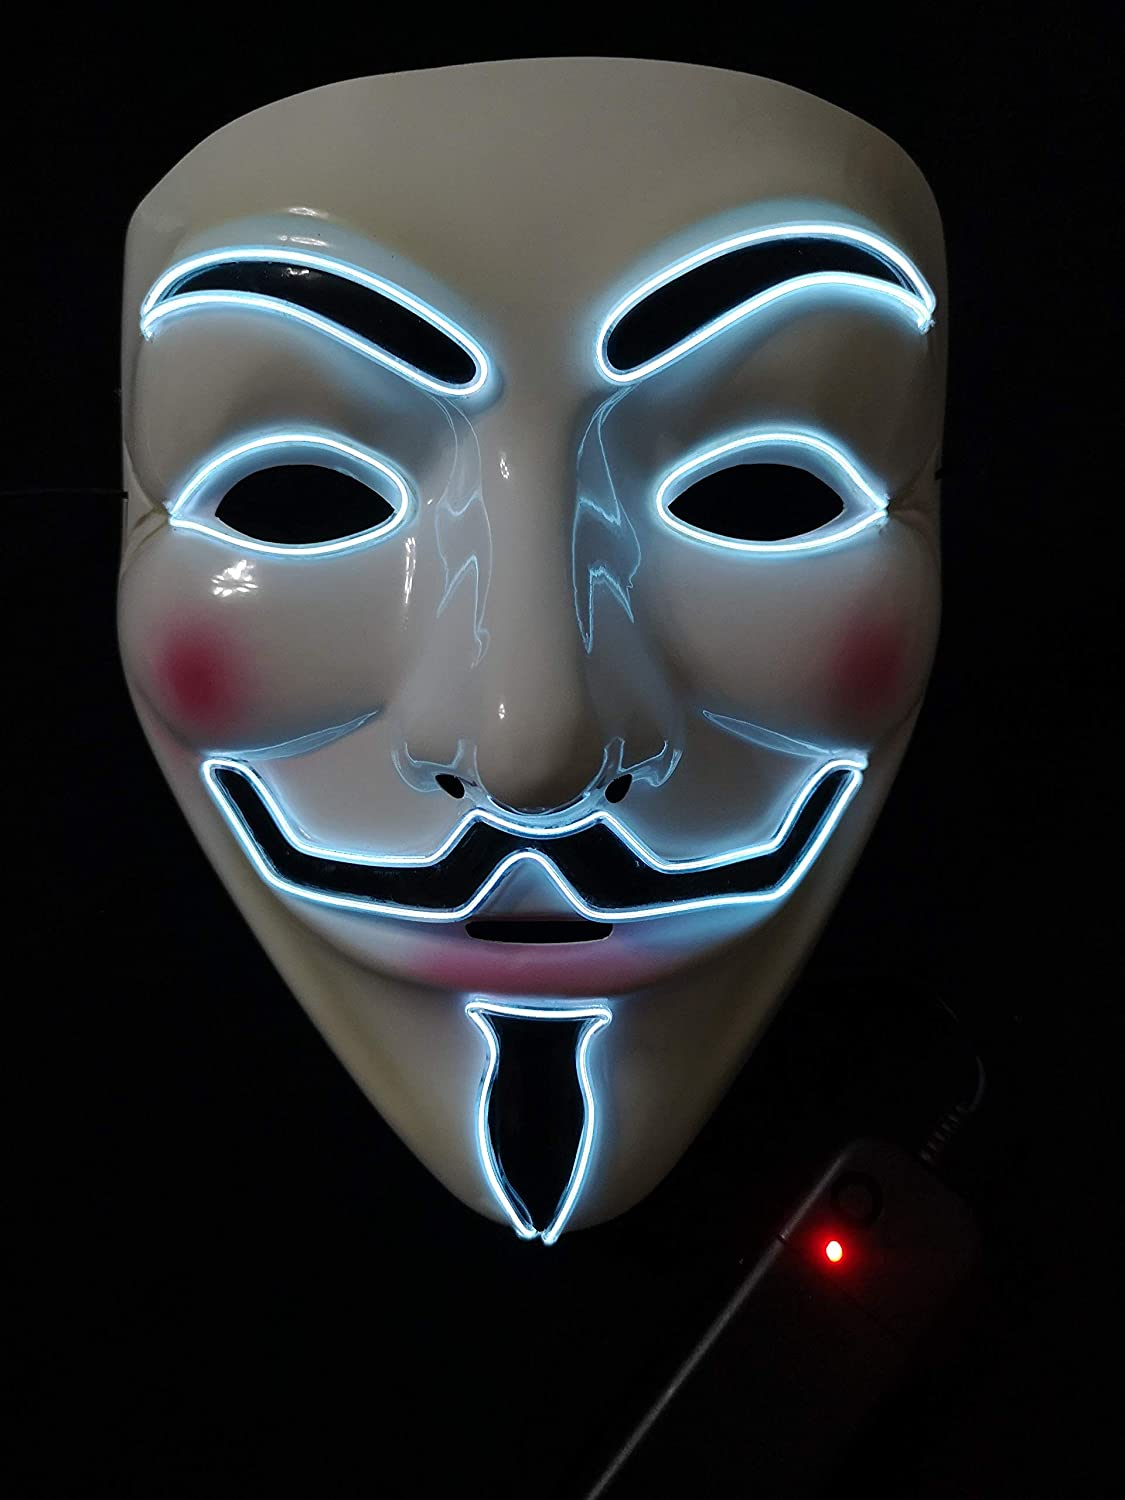 SOUTHSKY LED Mask V Vendetta Mask EL Wire Light Up For Halloween Costume Cosplay Party(V-White)